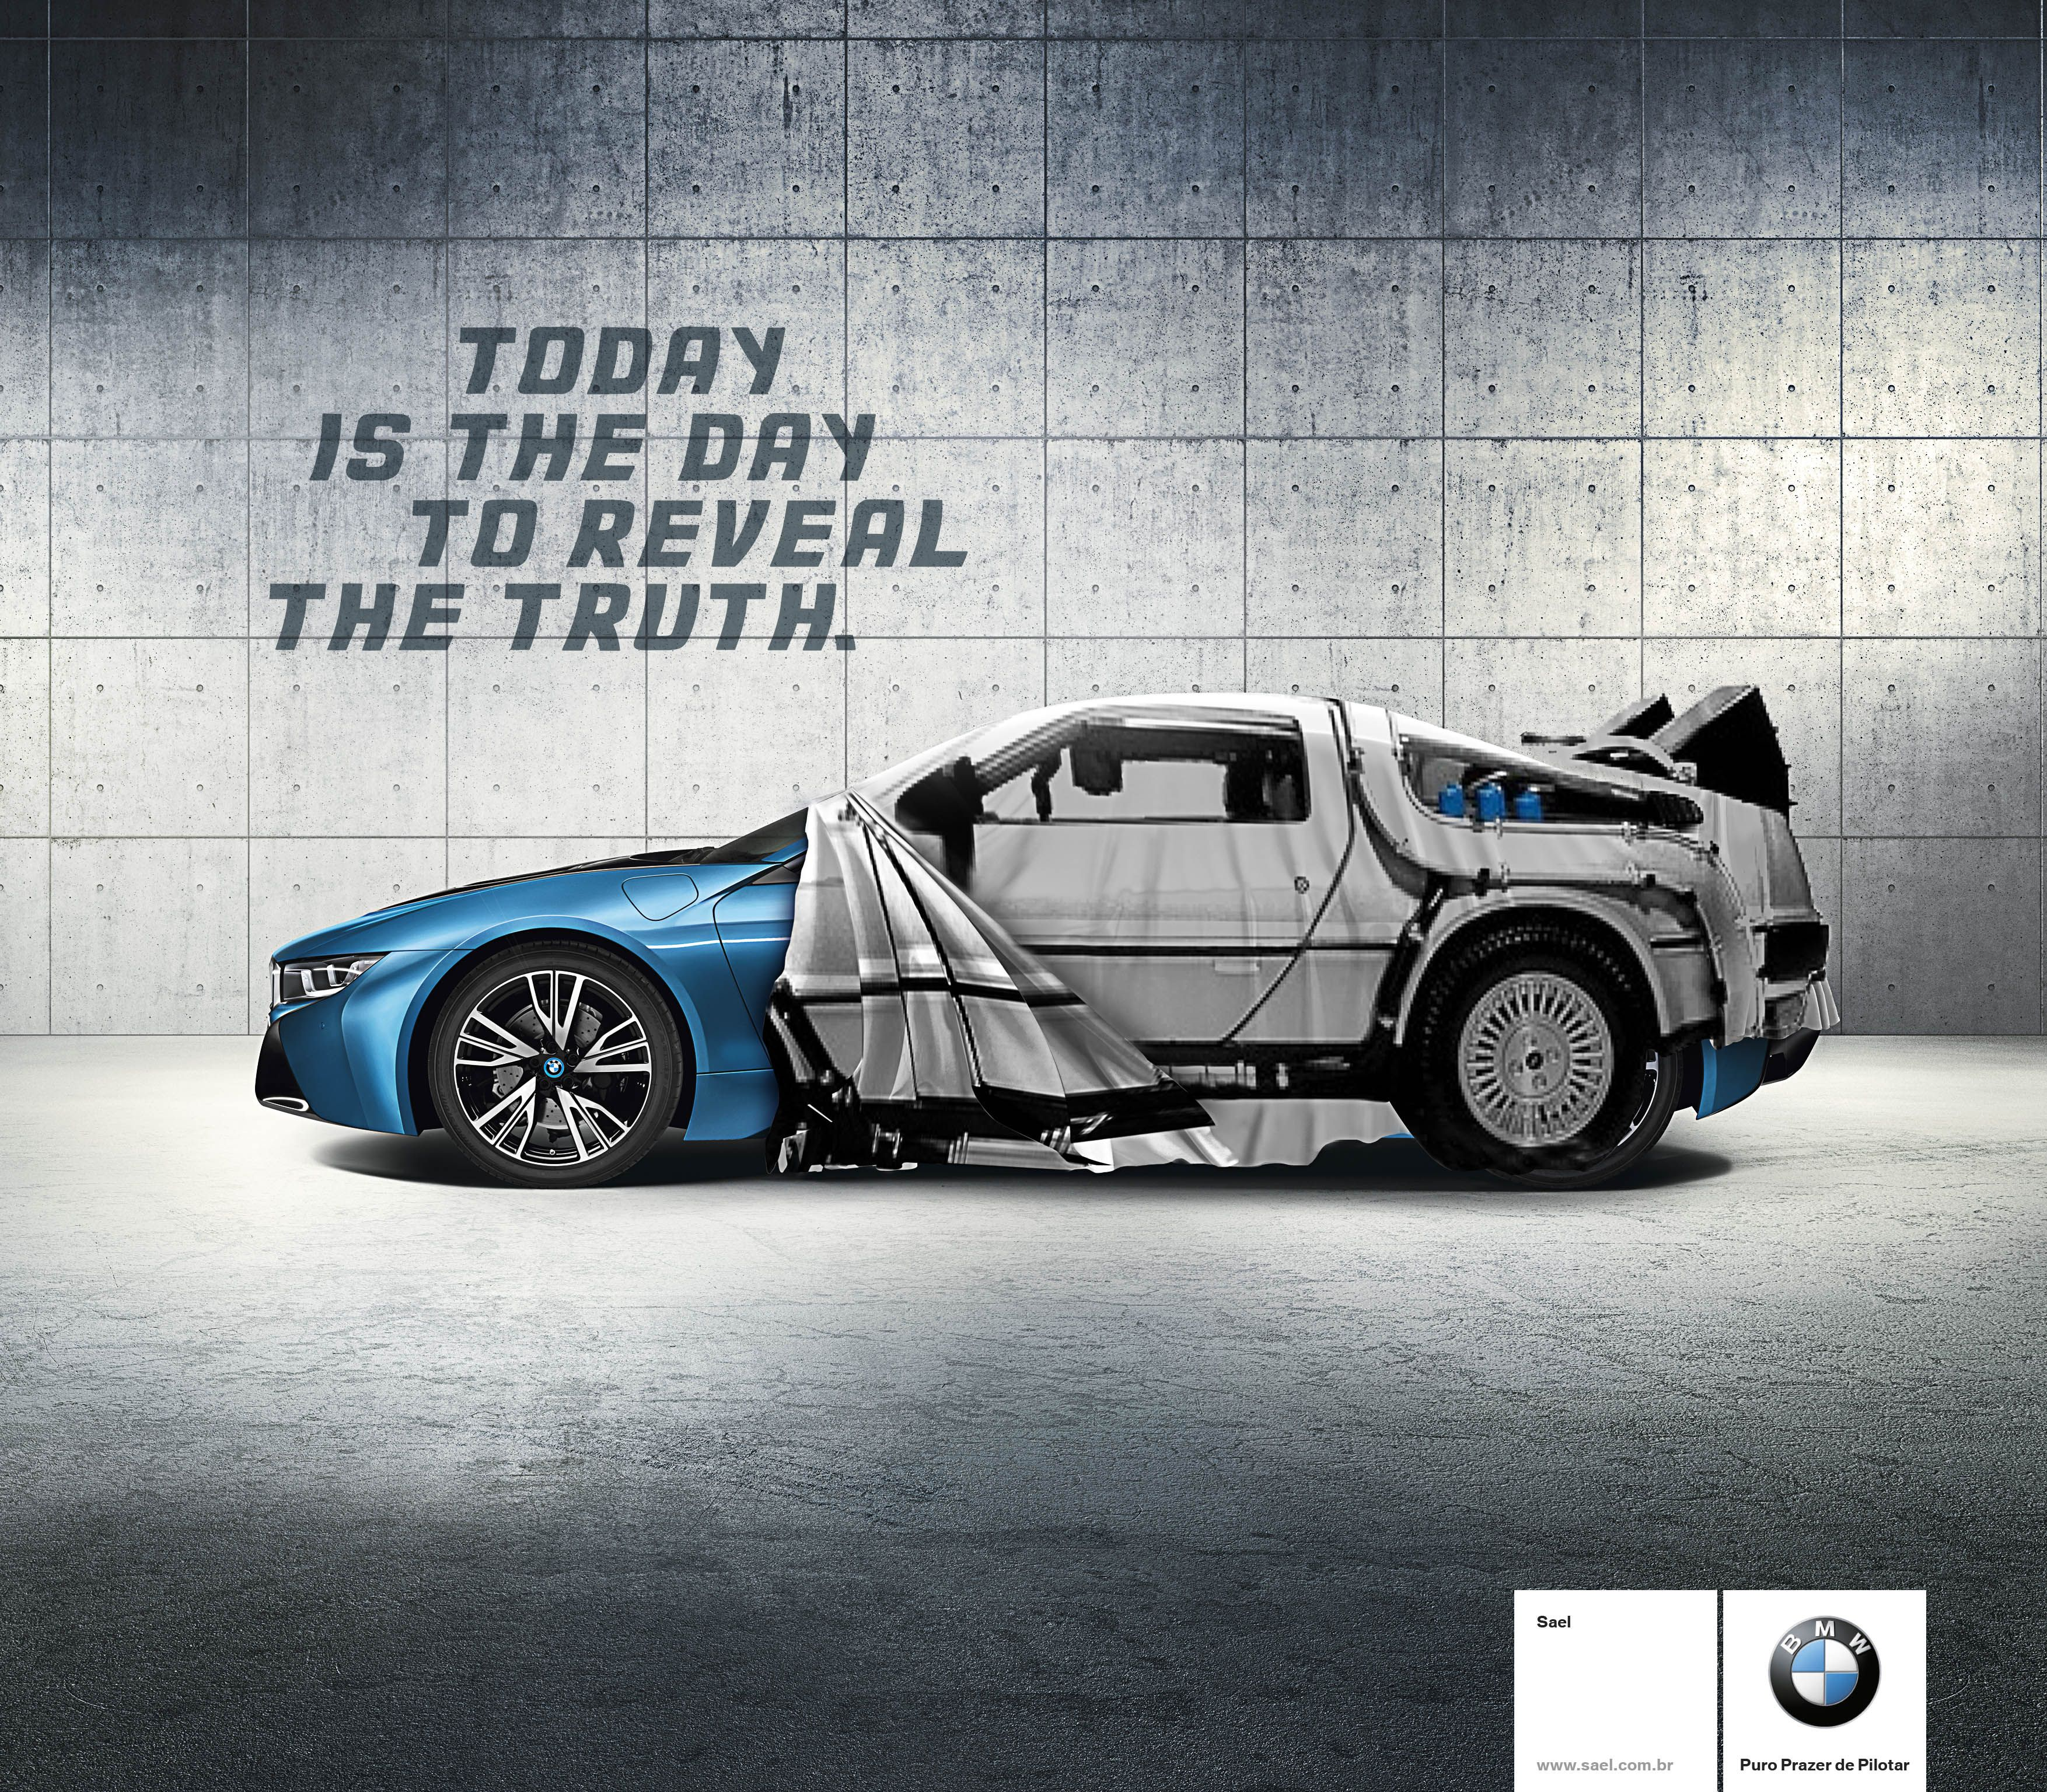 Adeevee sael bmw i8 today is the day to reveal the truth adeevee sael bmw i8 today is the day to reveal the truth sciox Image collections